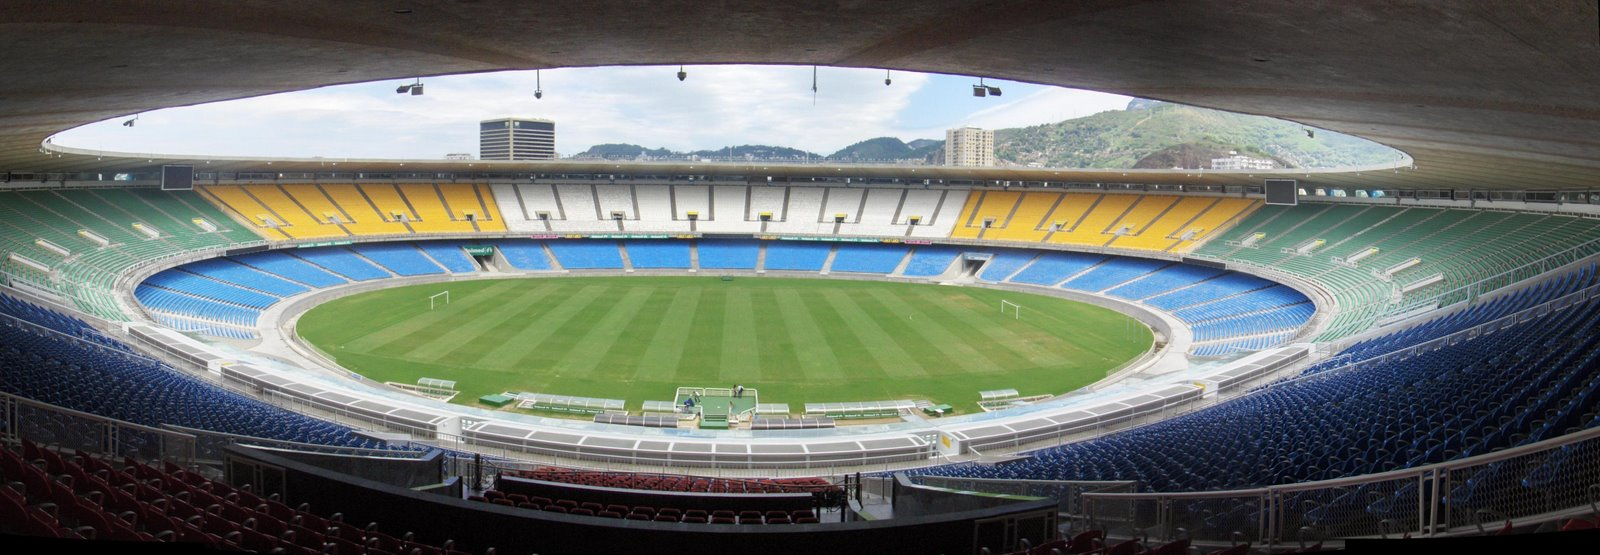 Fotos do Novo Estádio do Maracanã Para 2014 panoMaracanSeats